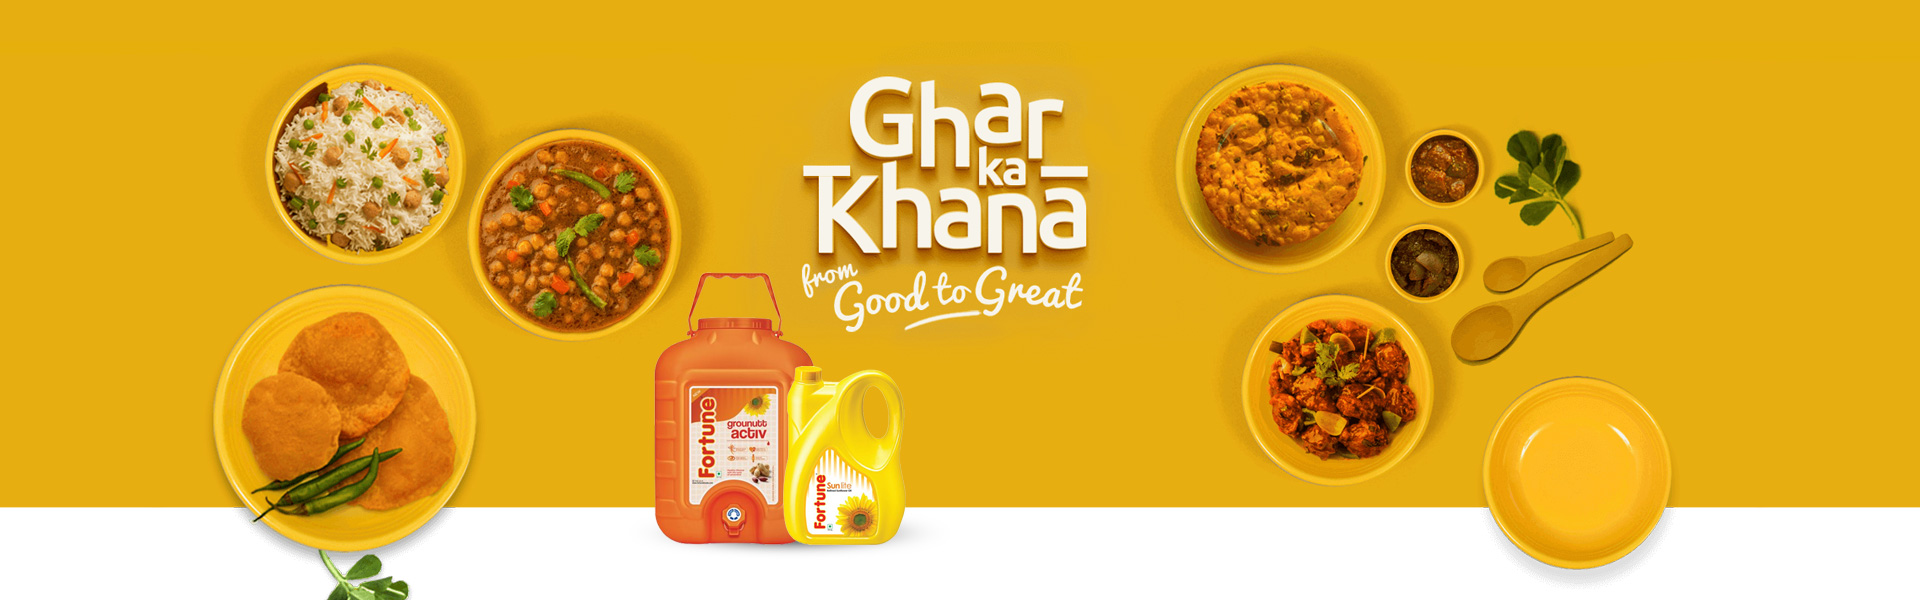 Fortune Foods by Adani Wilmar Delicious, wholesome and great is what your home-made food deserves to taste like. Taste Ghar ka Khana with Fortune Foods by Adani Wilmar. India's no.1 edible oil & food brand